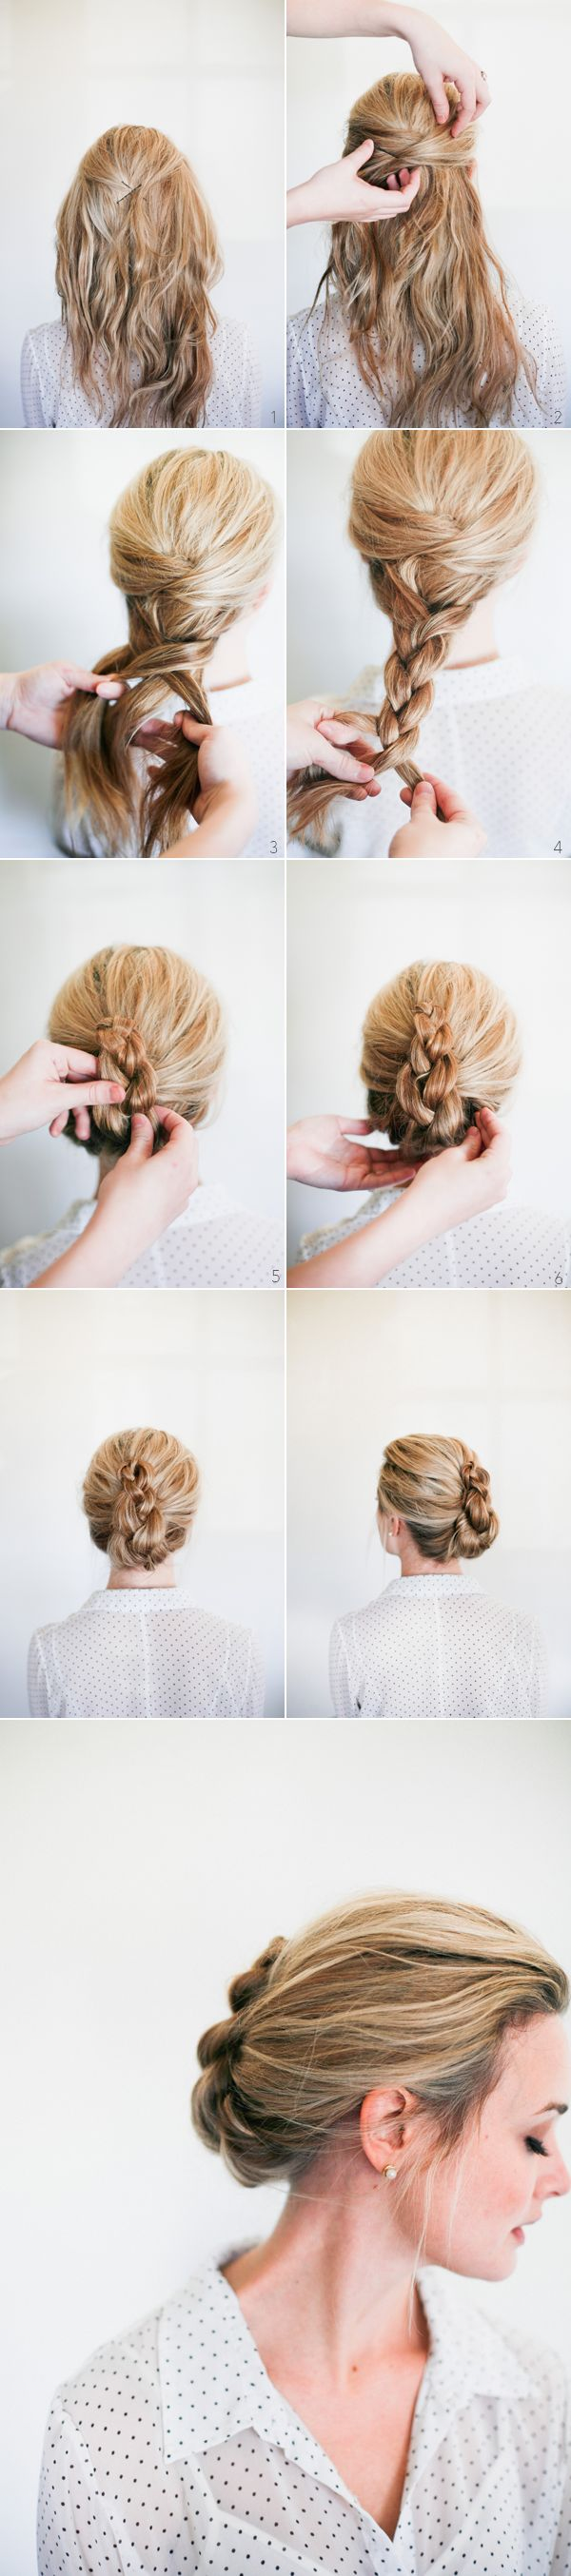 44 best LARP Hair Ideas images on Pinterest | Hair ideas, Hairstyle ...